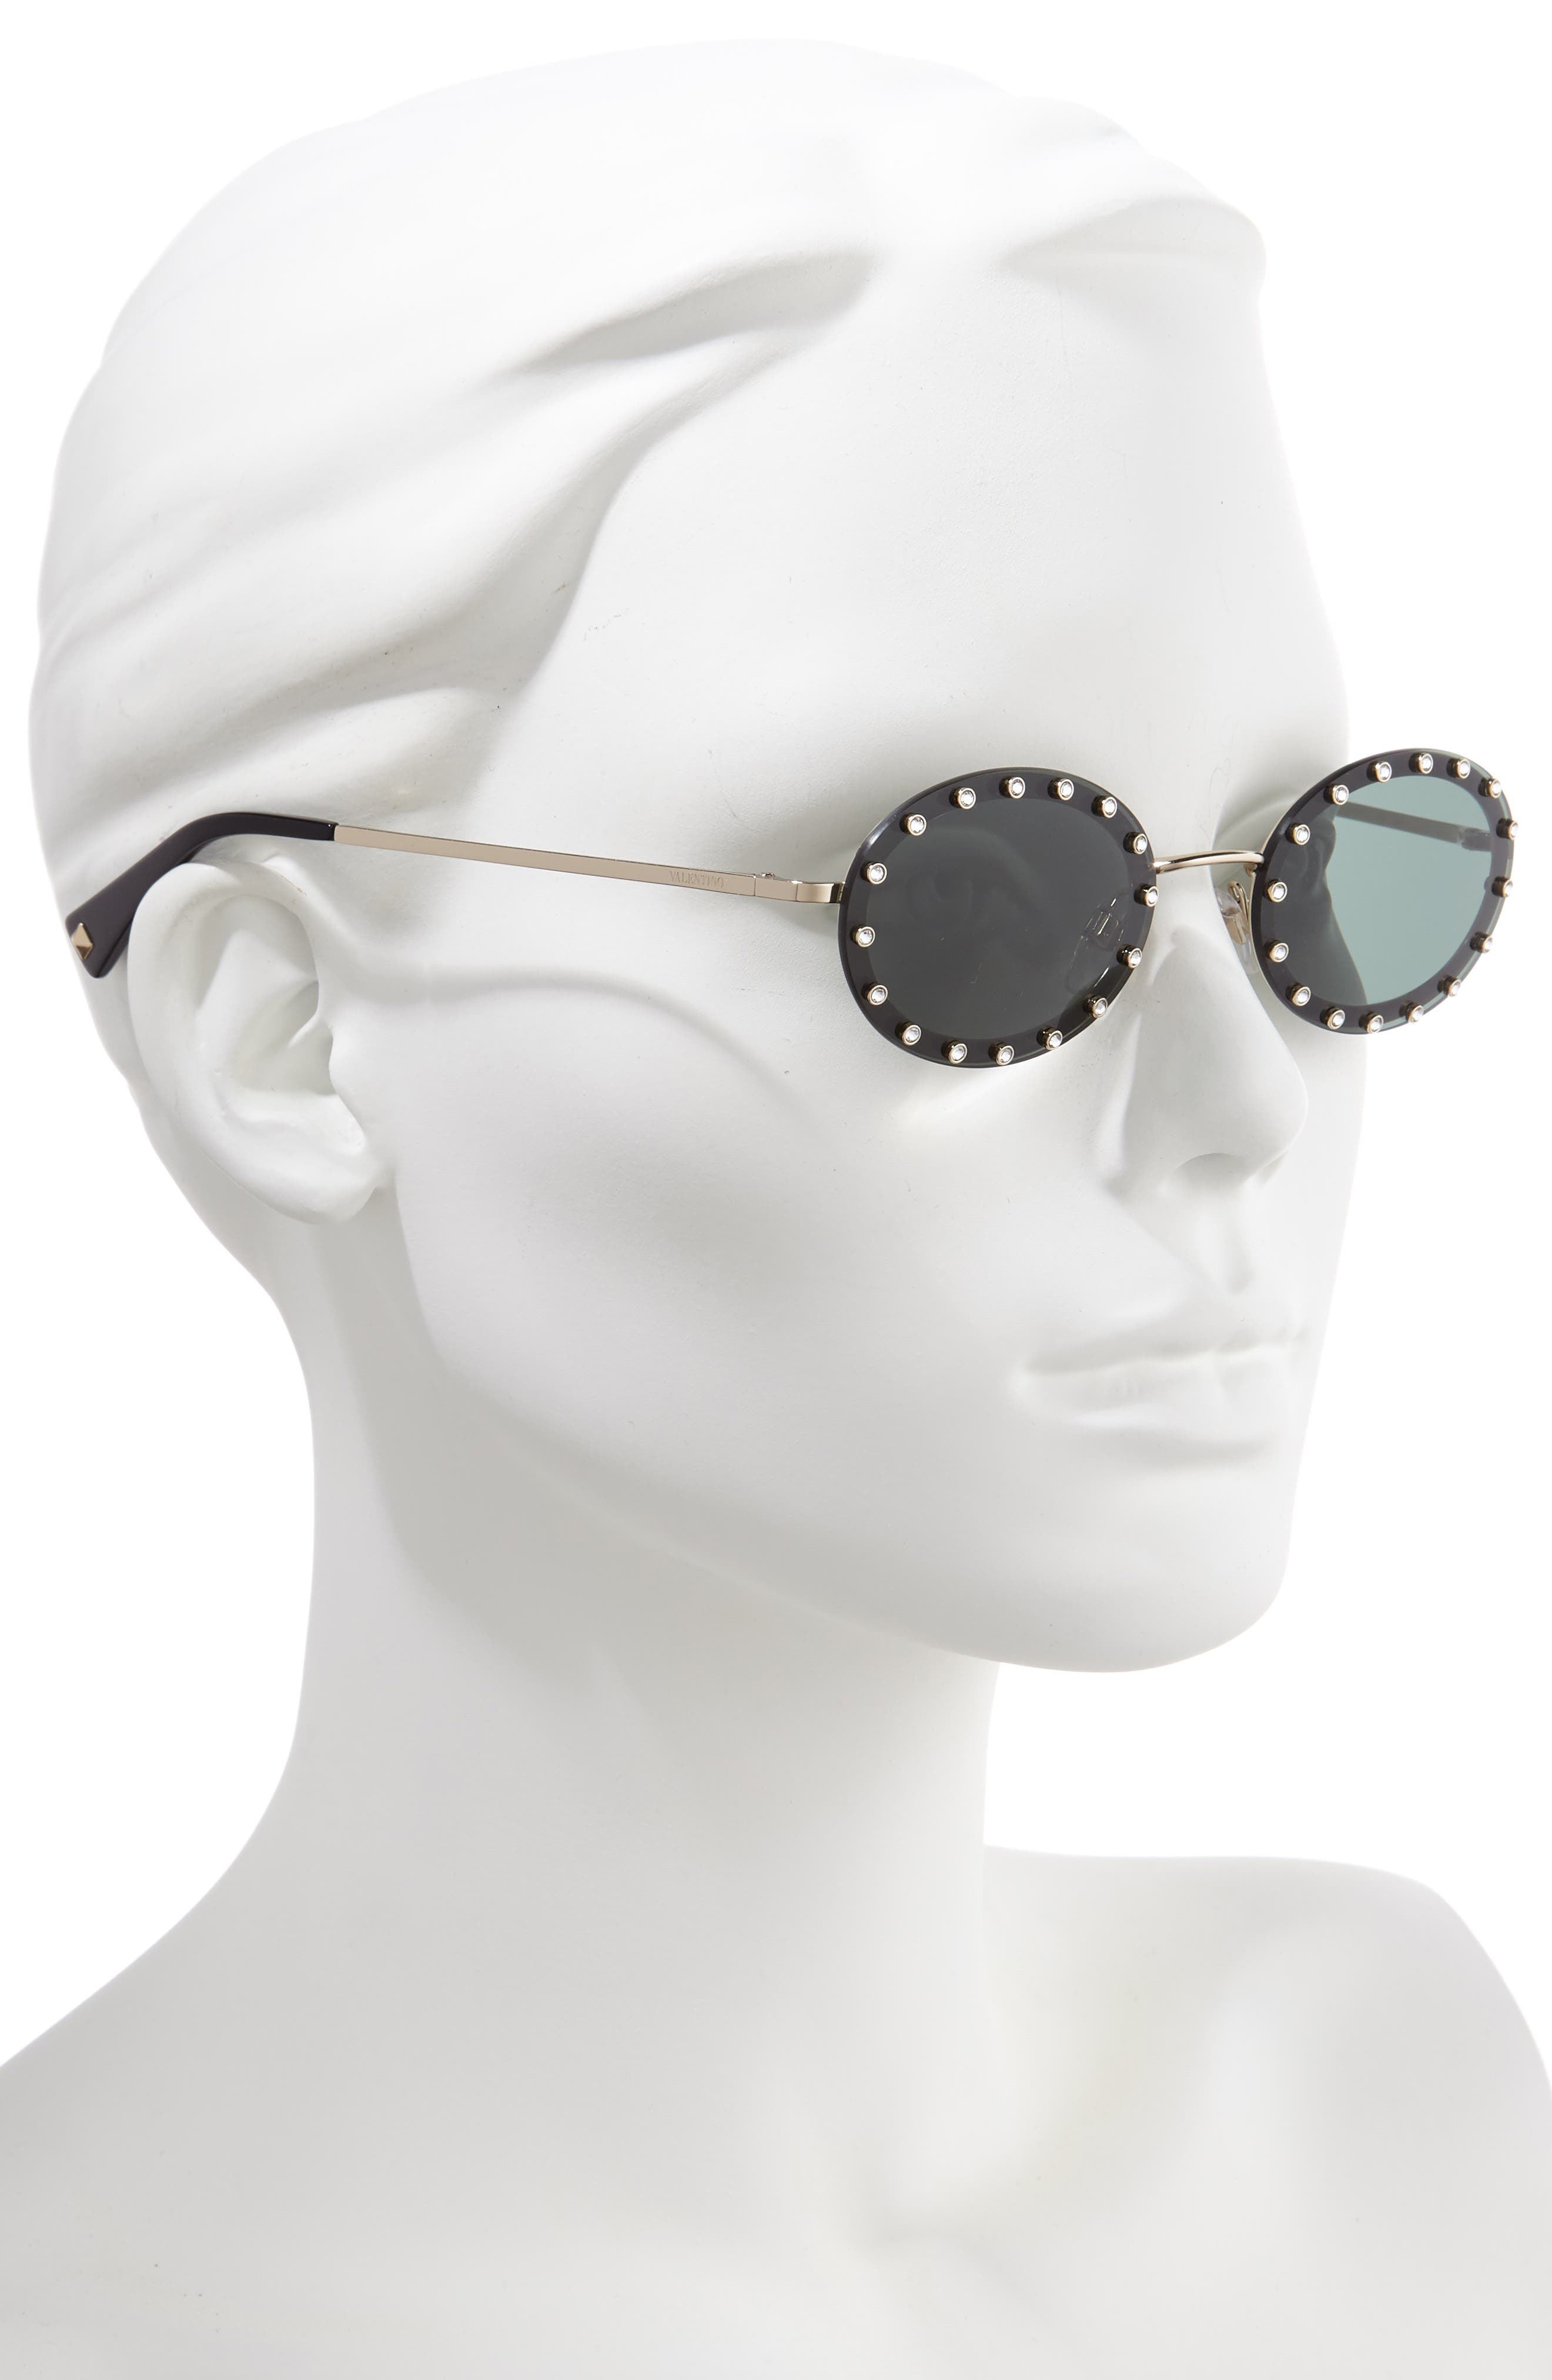 51mm Crystal Rockstud Oval Sunglasses,                             Alternate thumbnail 2, color,                             BLACK/ GREEN SOLID